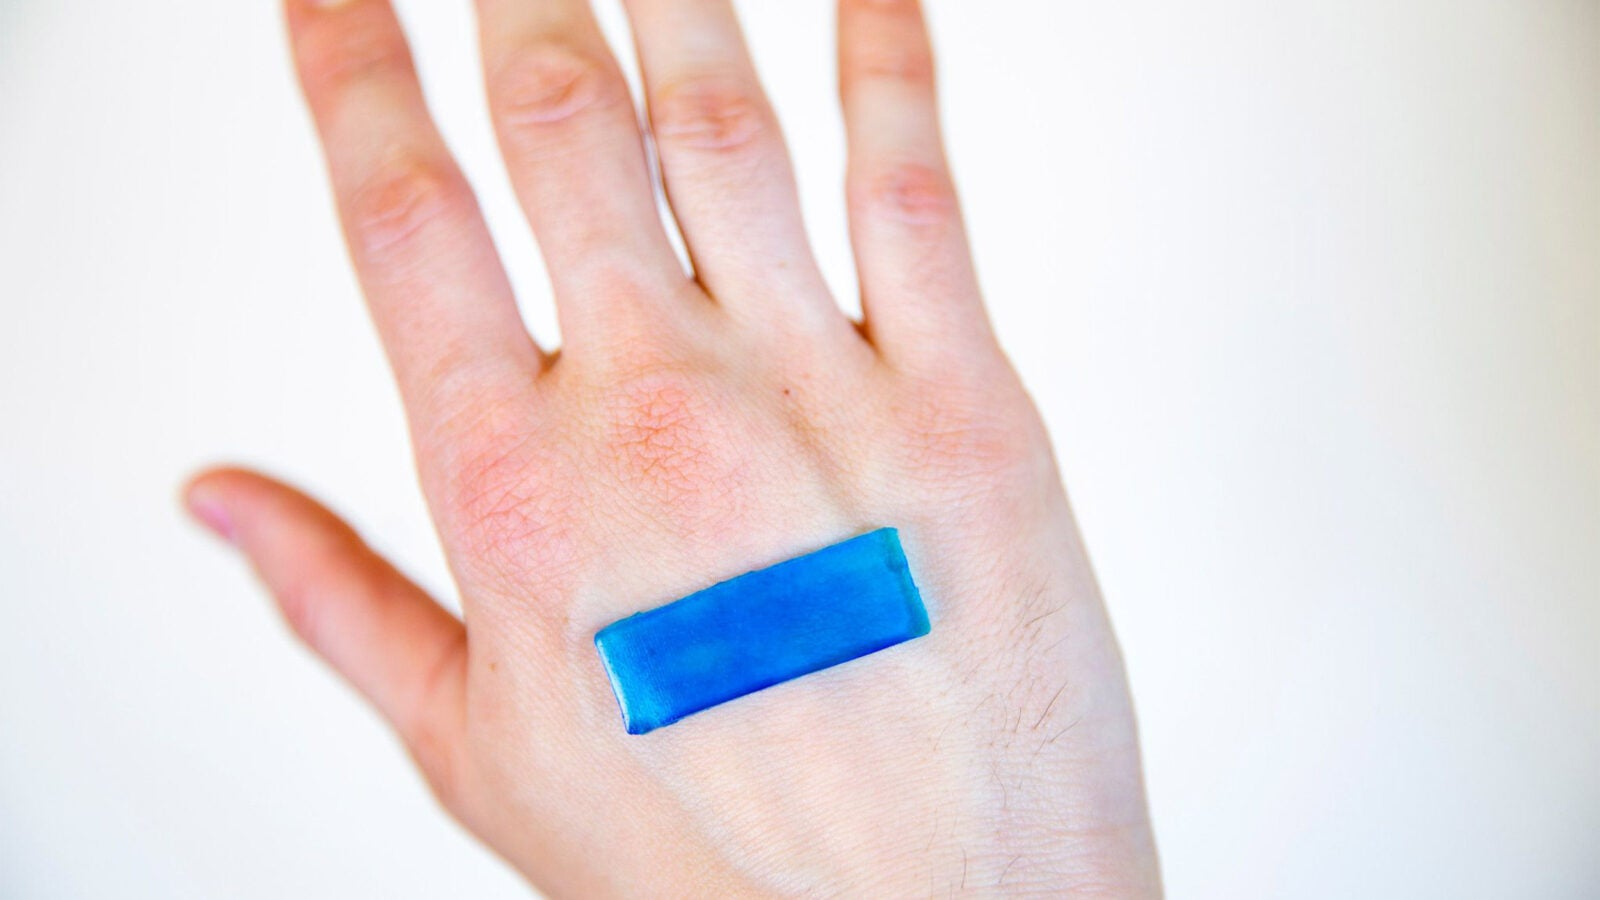 Hand with tough gel adhesive bandage